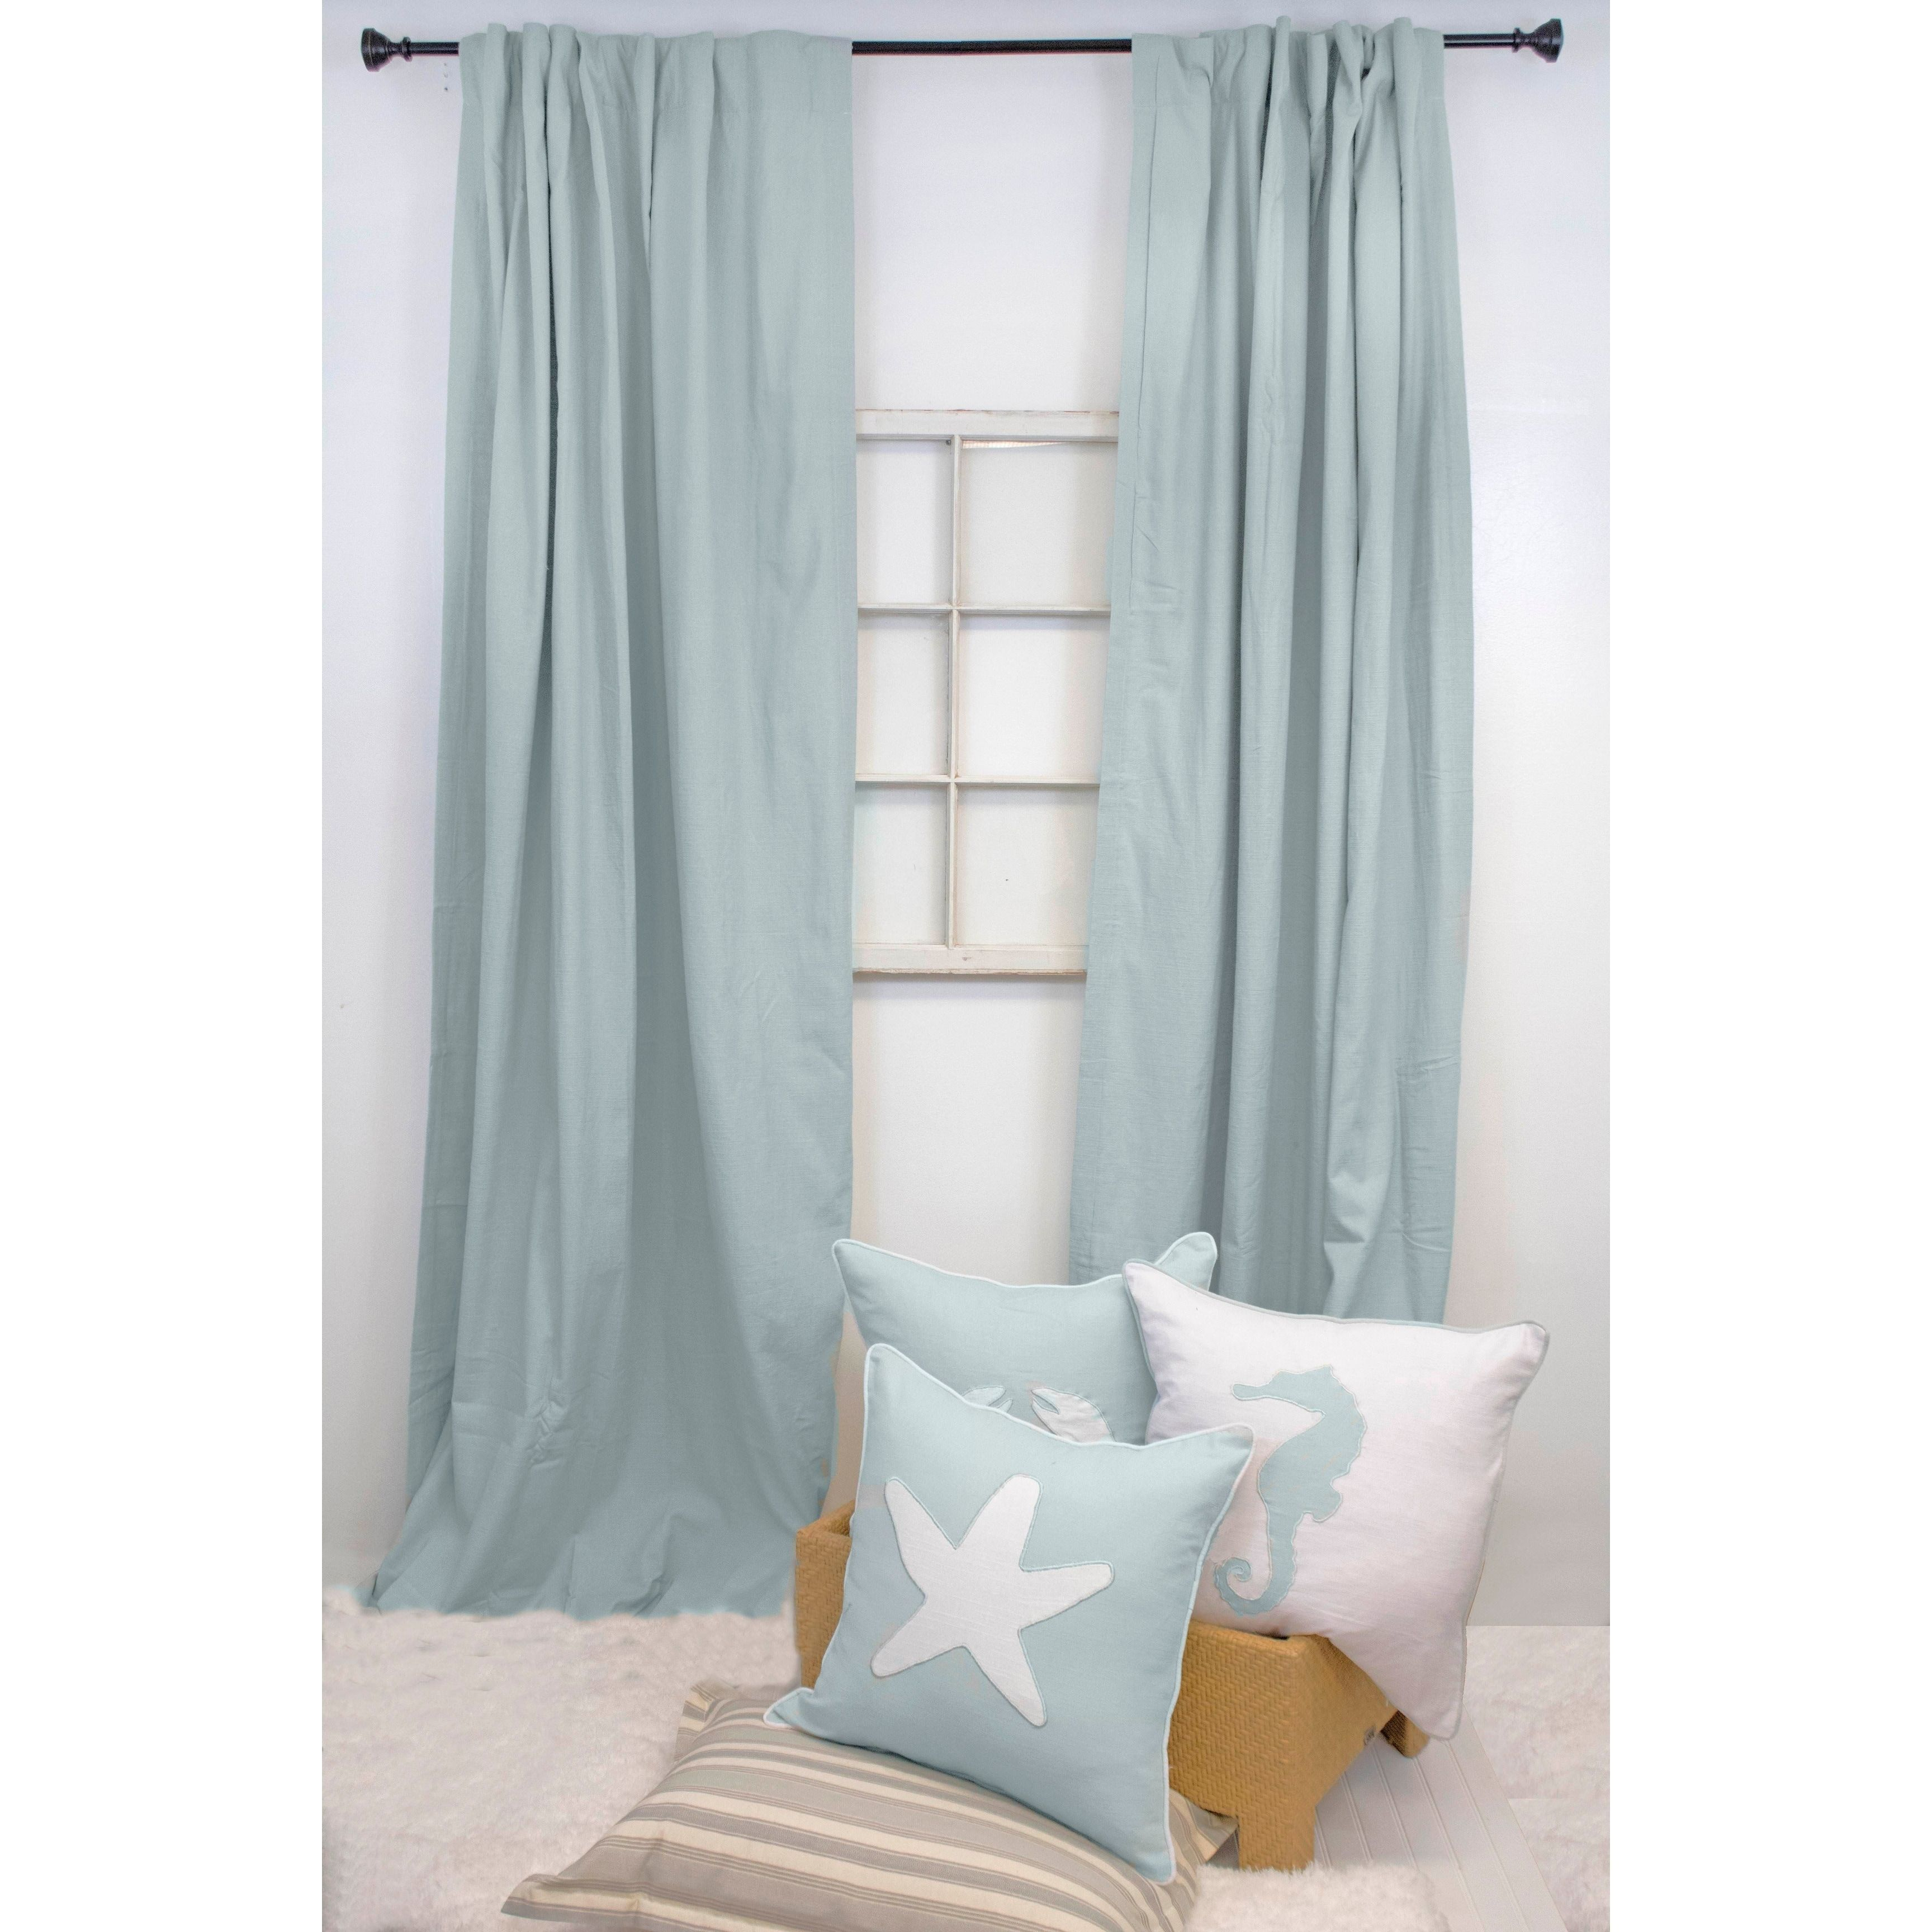 American Colors Brand Heritage Curtain Panels Spa | Products Pertaining To Solid Cotton Curtain Panels (View 5 of 30)